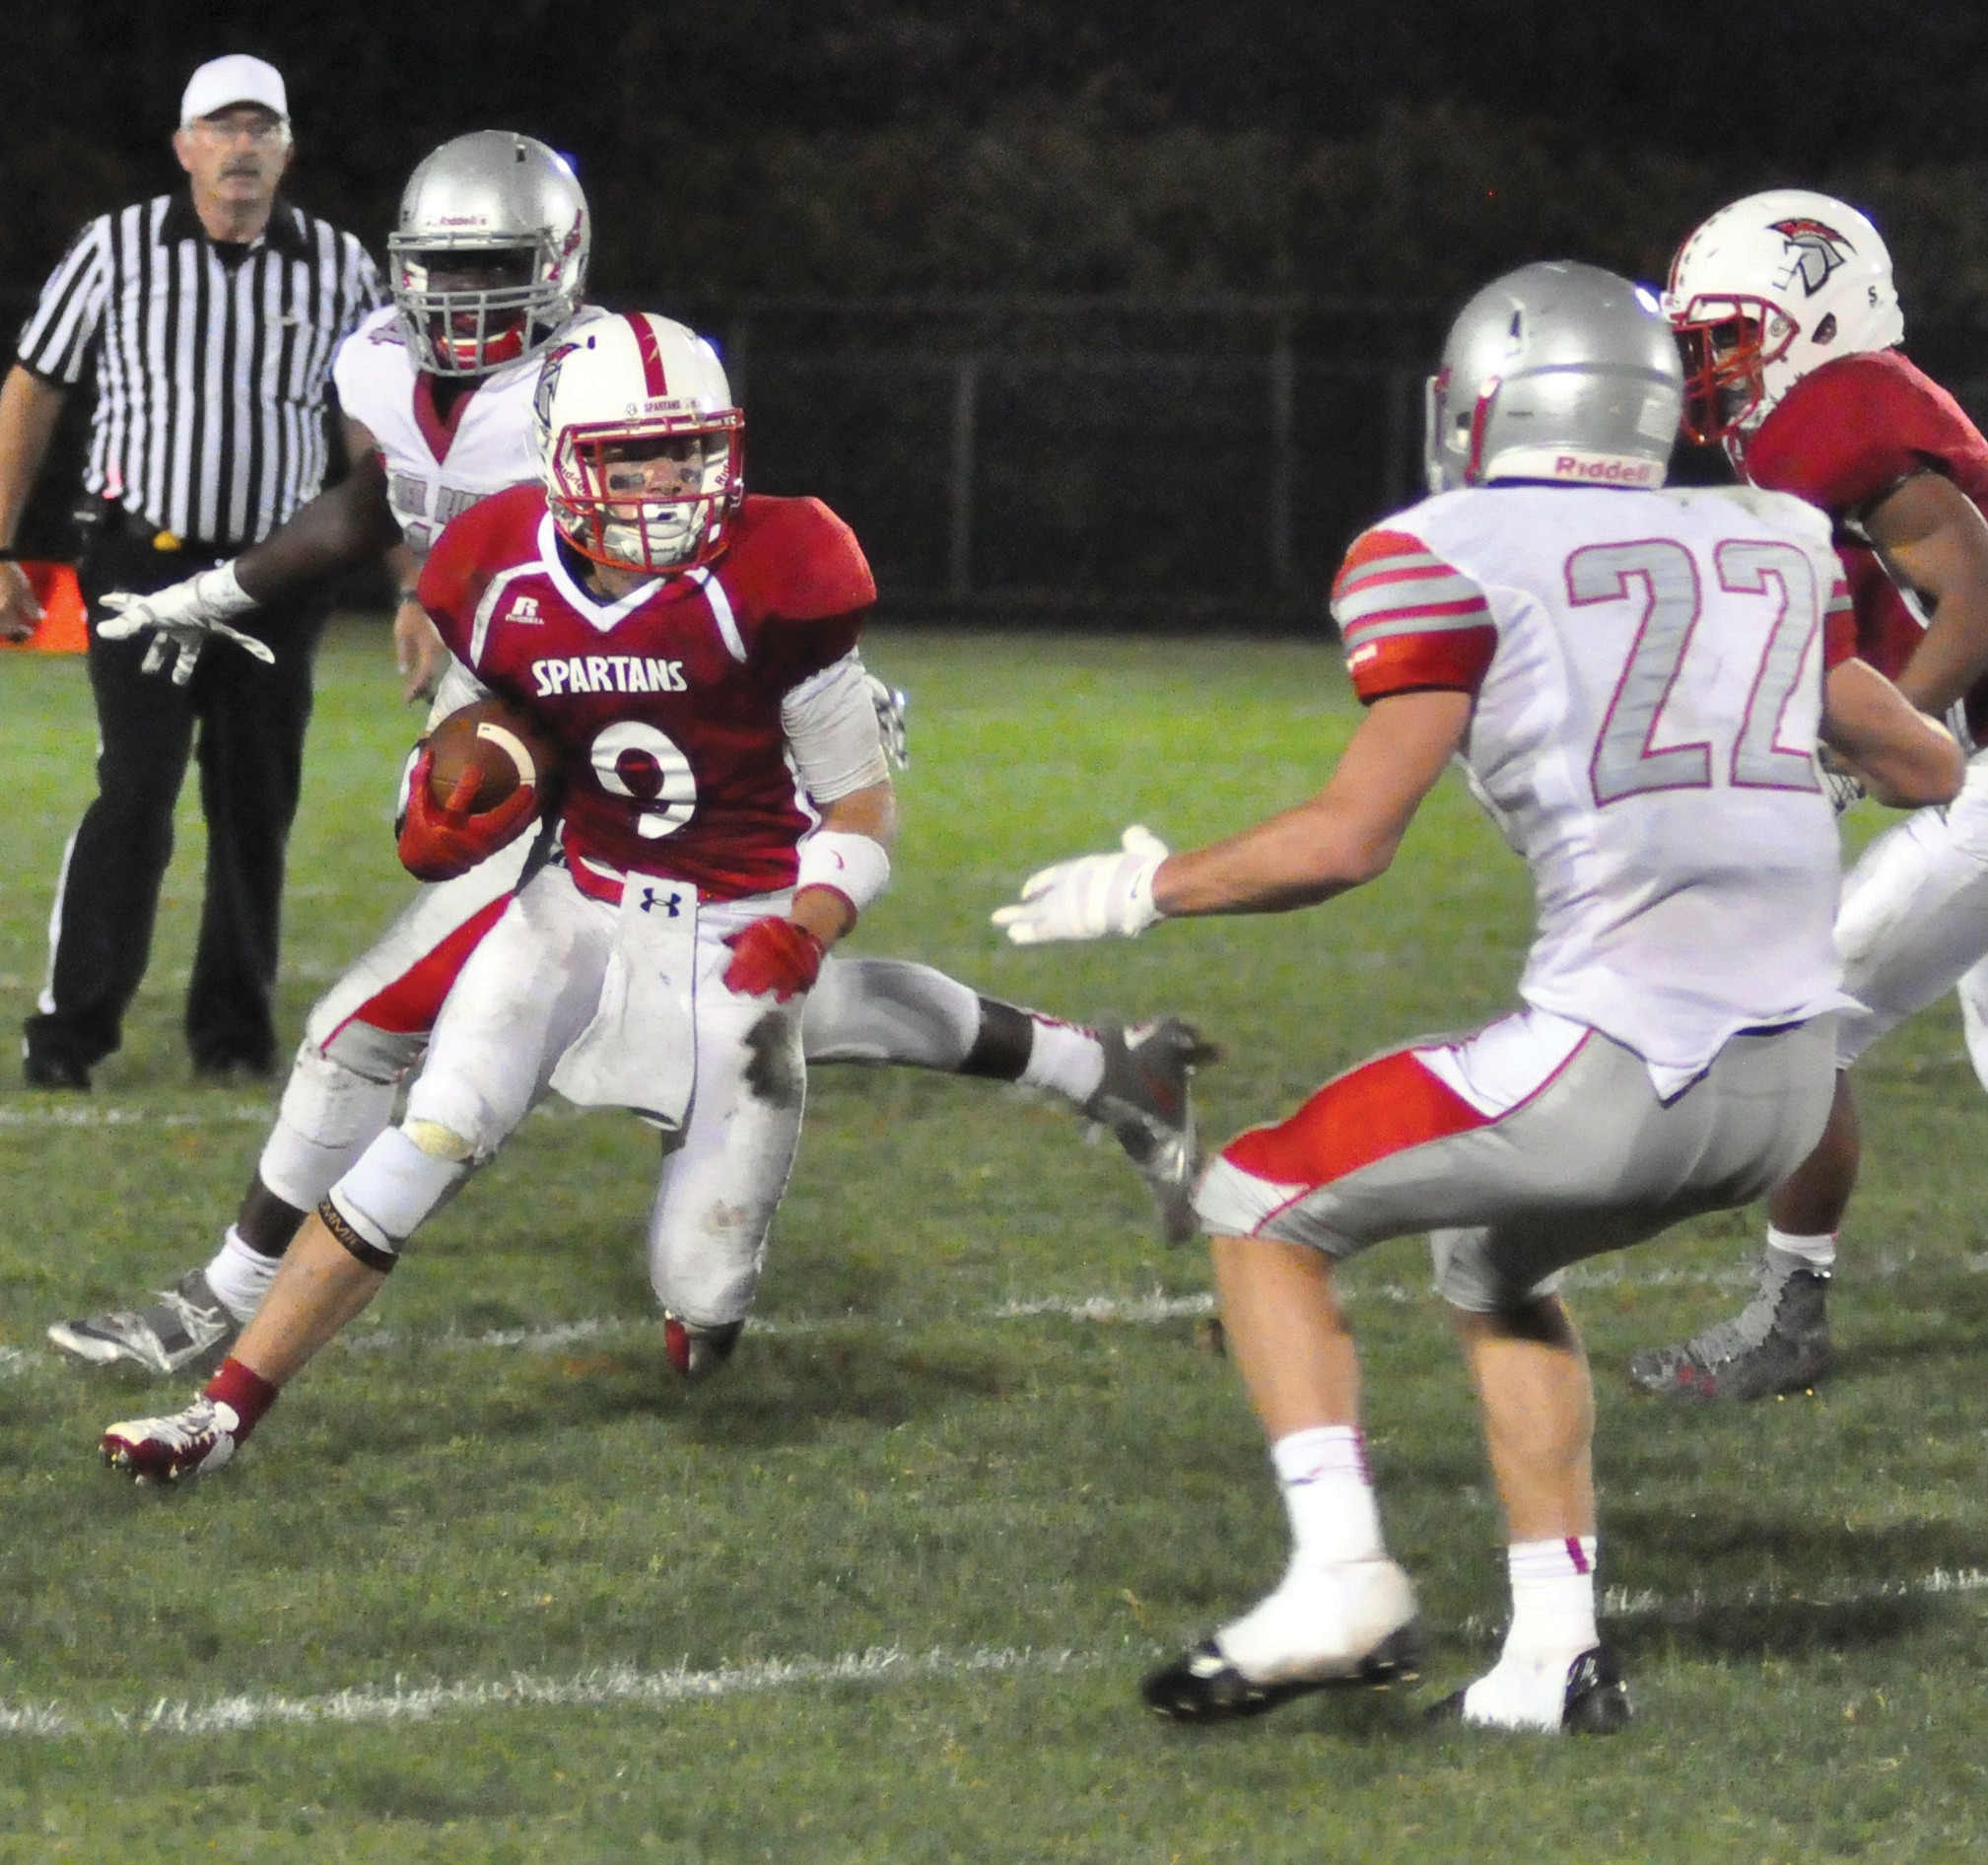 Sanford's Peter Hegarty (9) looks to make a move against South Portland's Spencer Houlette (22) during the first half of the Spartans' 25- 0 victory at Cobb Stadium in Sanford Friday night.